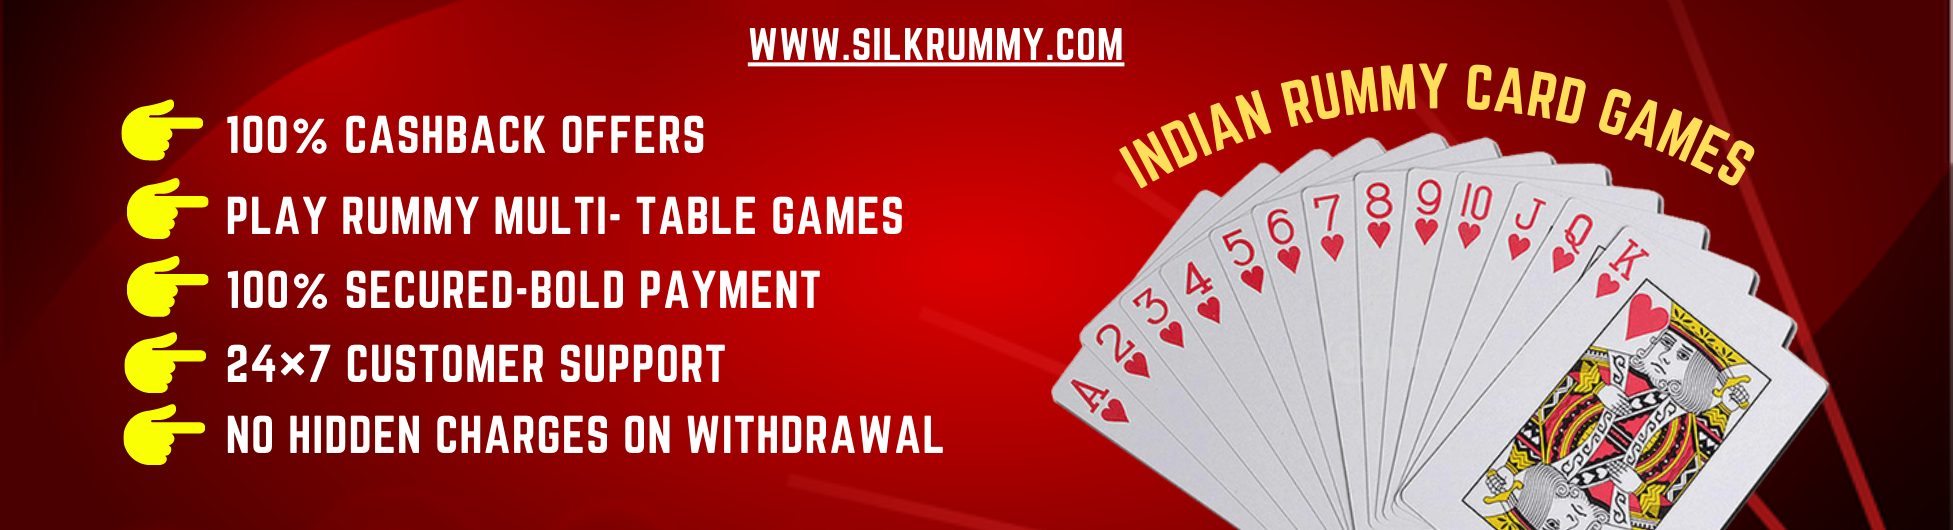 Indian Rummy Card Games